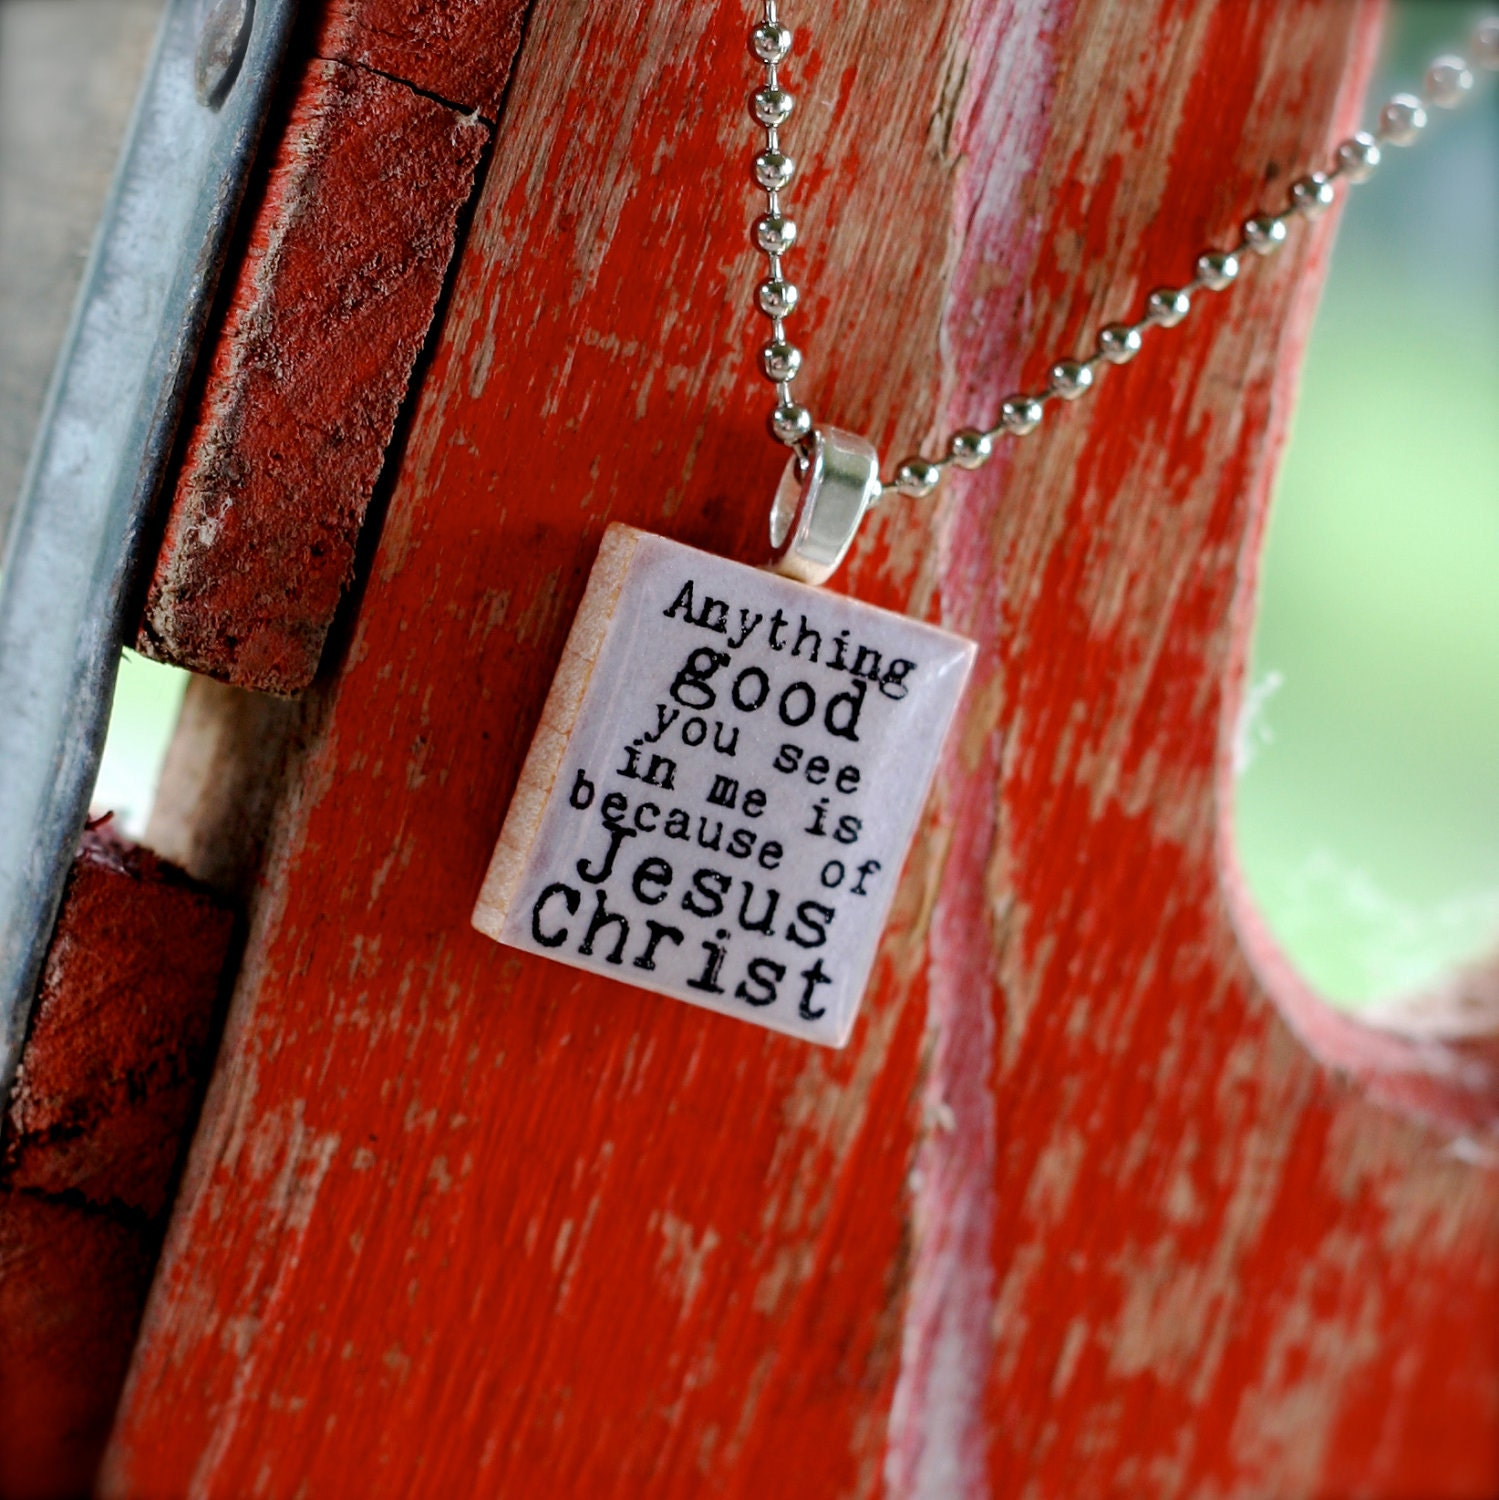 Anything GOOD you see in me is because of JESUS CHRIST Scrabble necklace